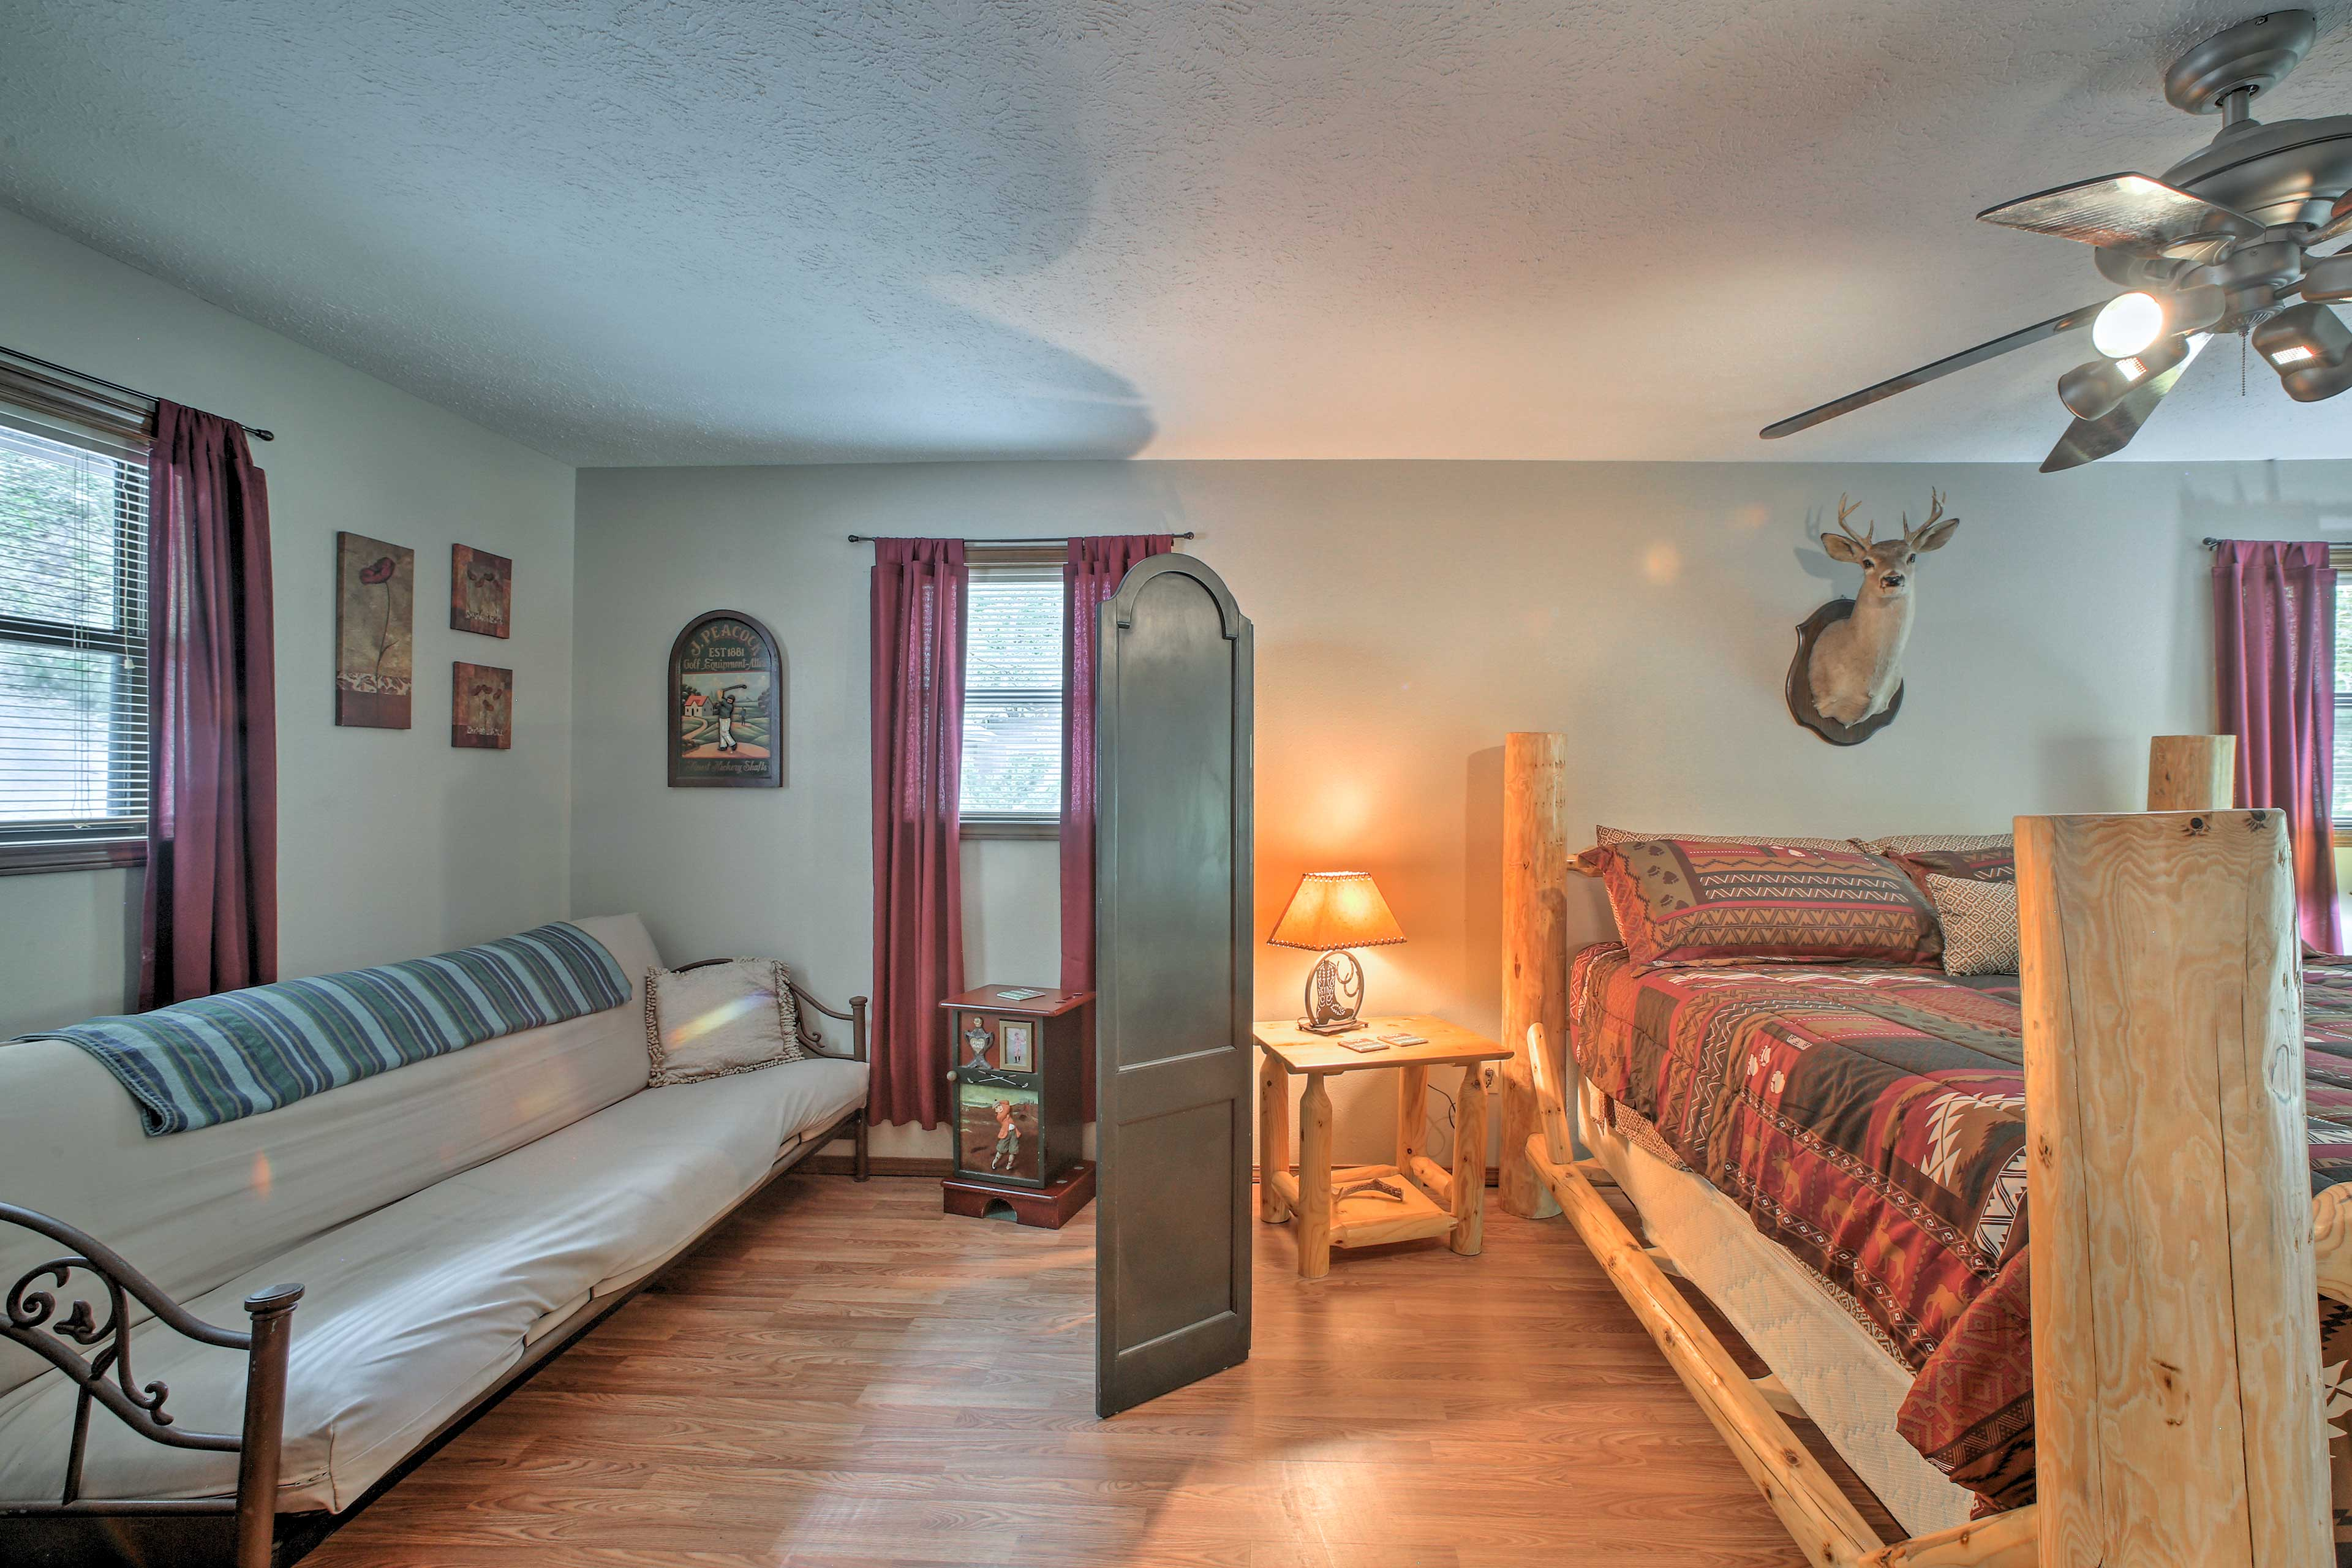 Two additional guests will enjoy nights of peaceful sleep on the futon.